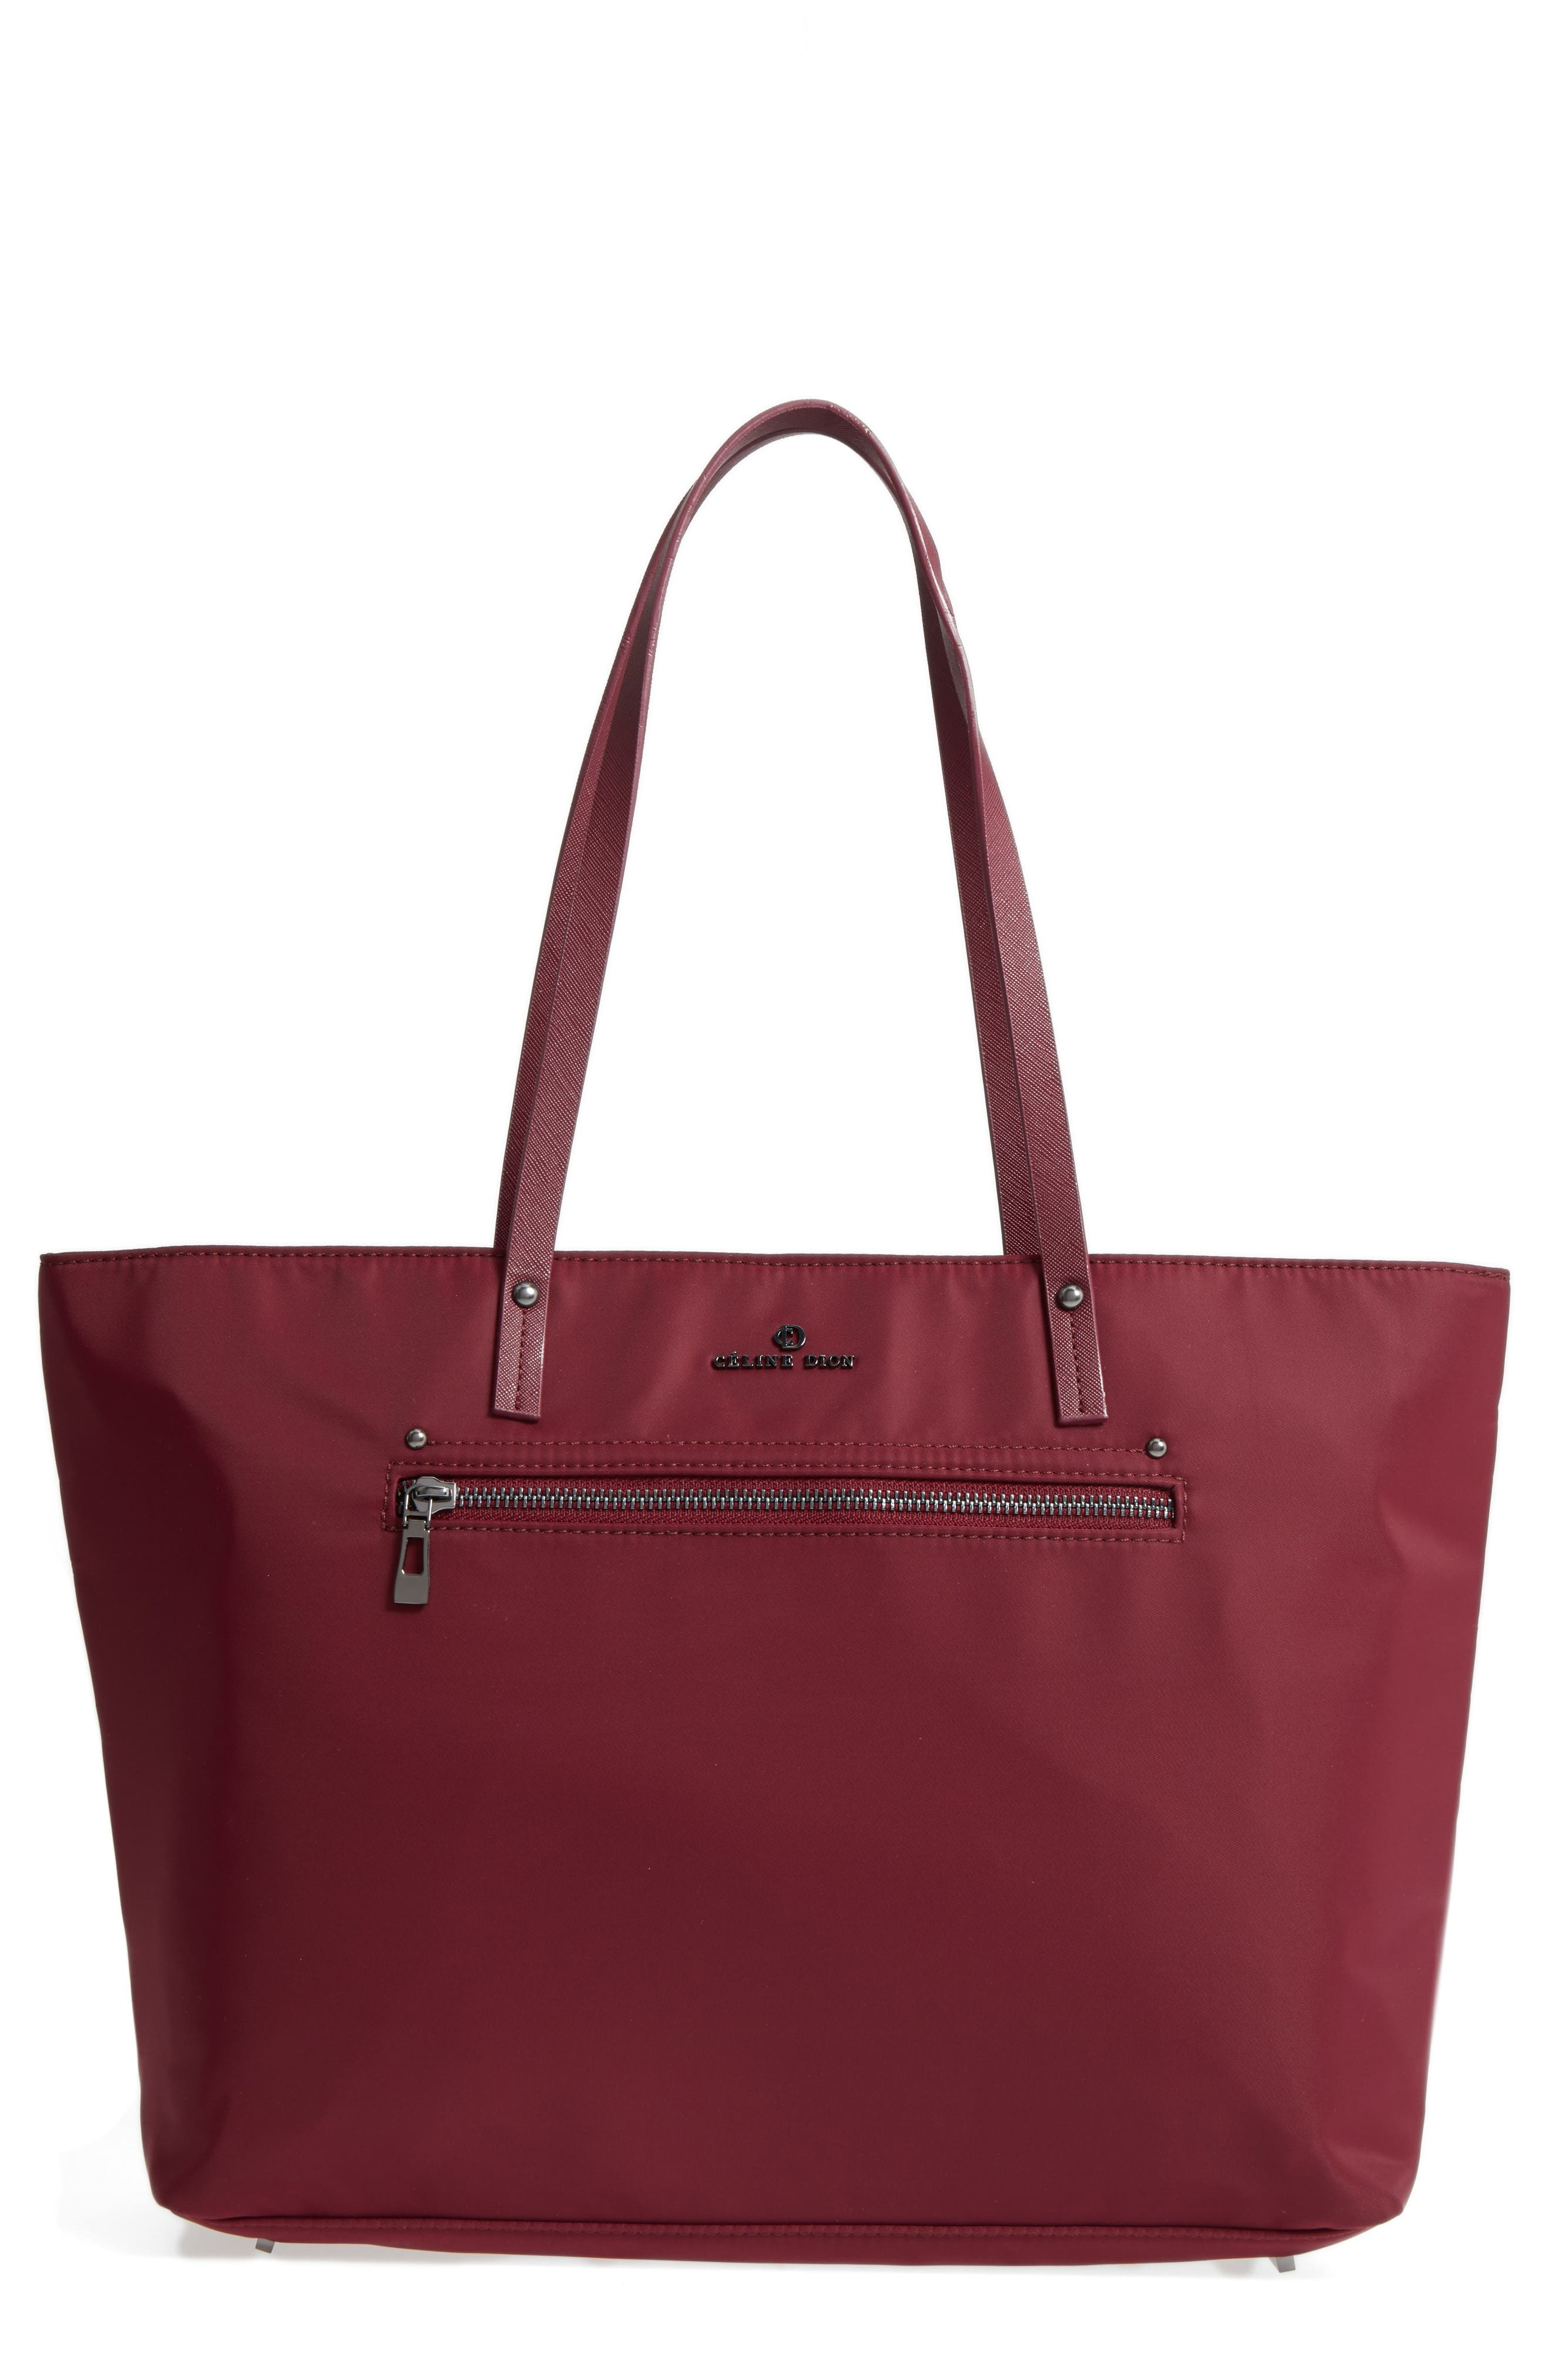 6164c91f70 CELINE DION Nylon Tote Bags for Women  Leather